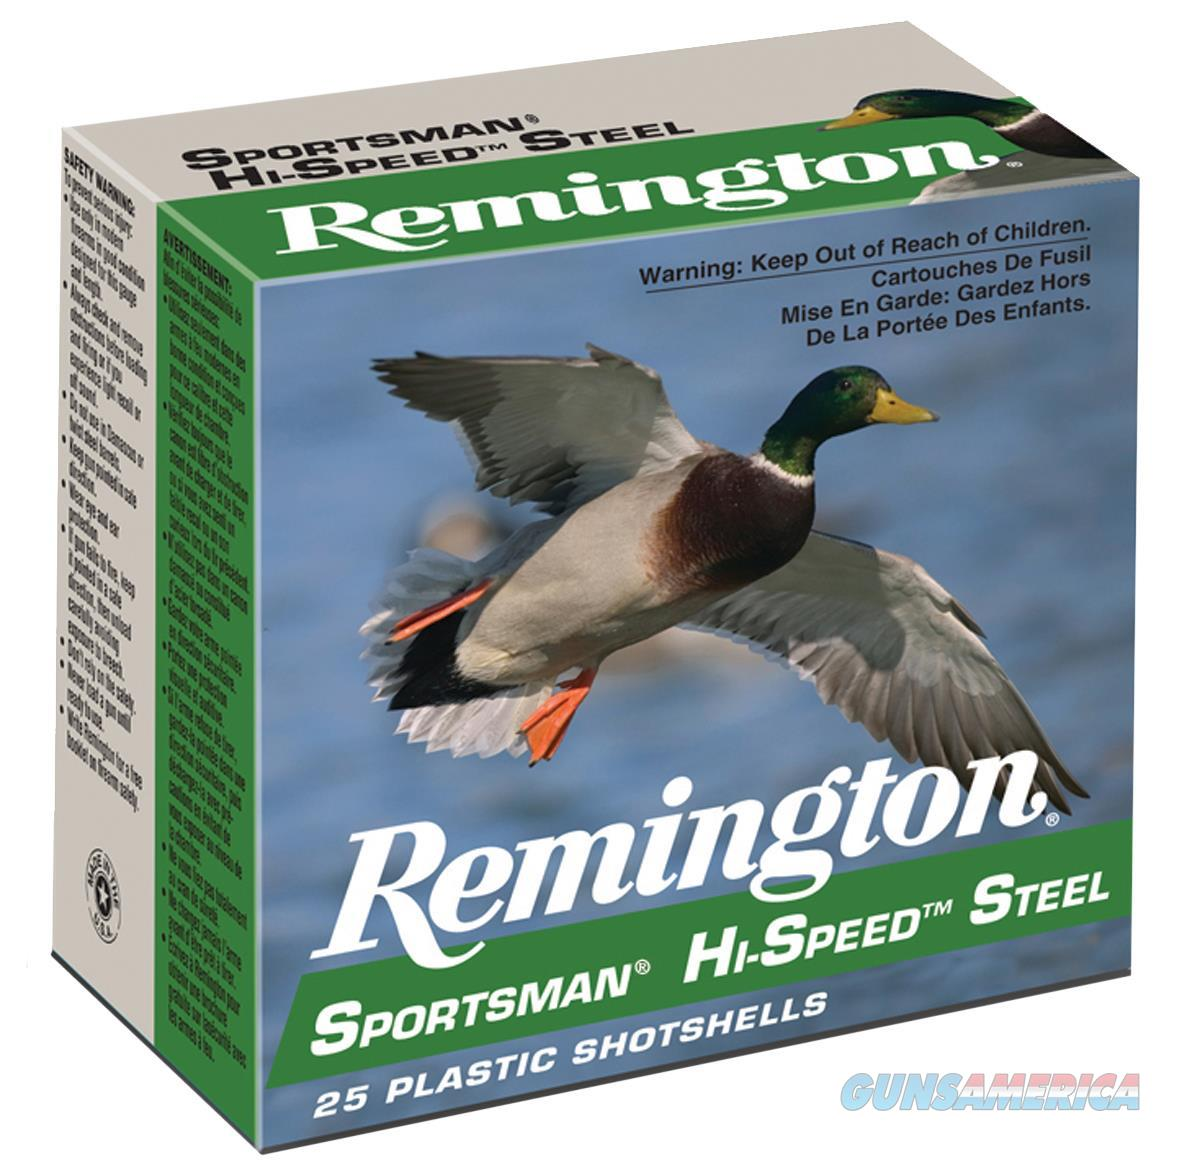 "Rem Sst126 Sportsman Steel Loads 12 Ga 2.75"" 1 Oz 6 Shot 25Box/10Case SST126  Non-Guns > Ammunition"